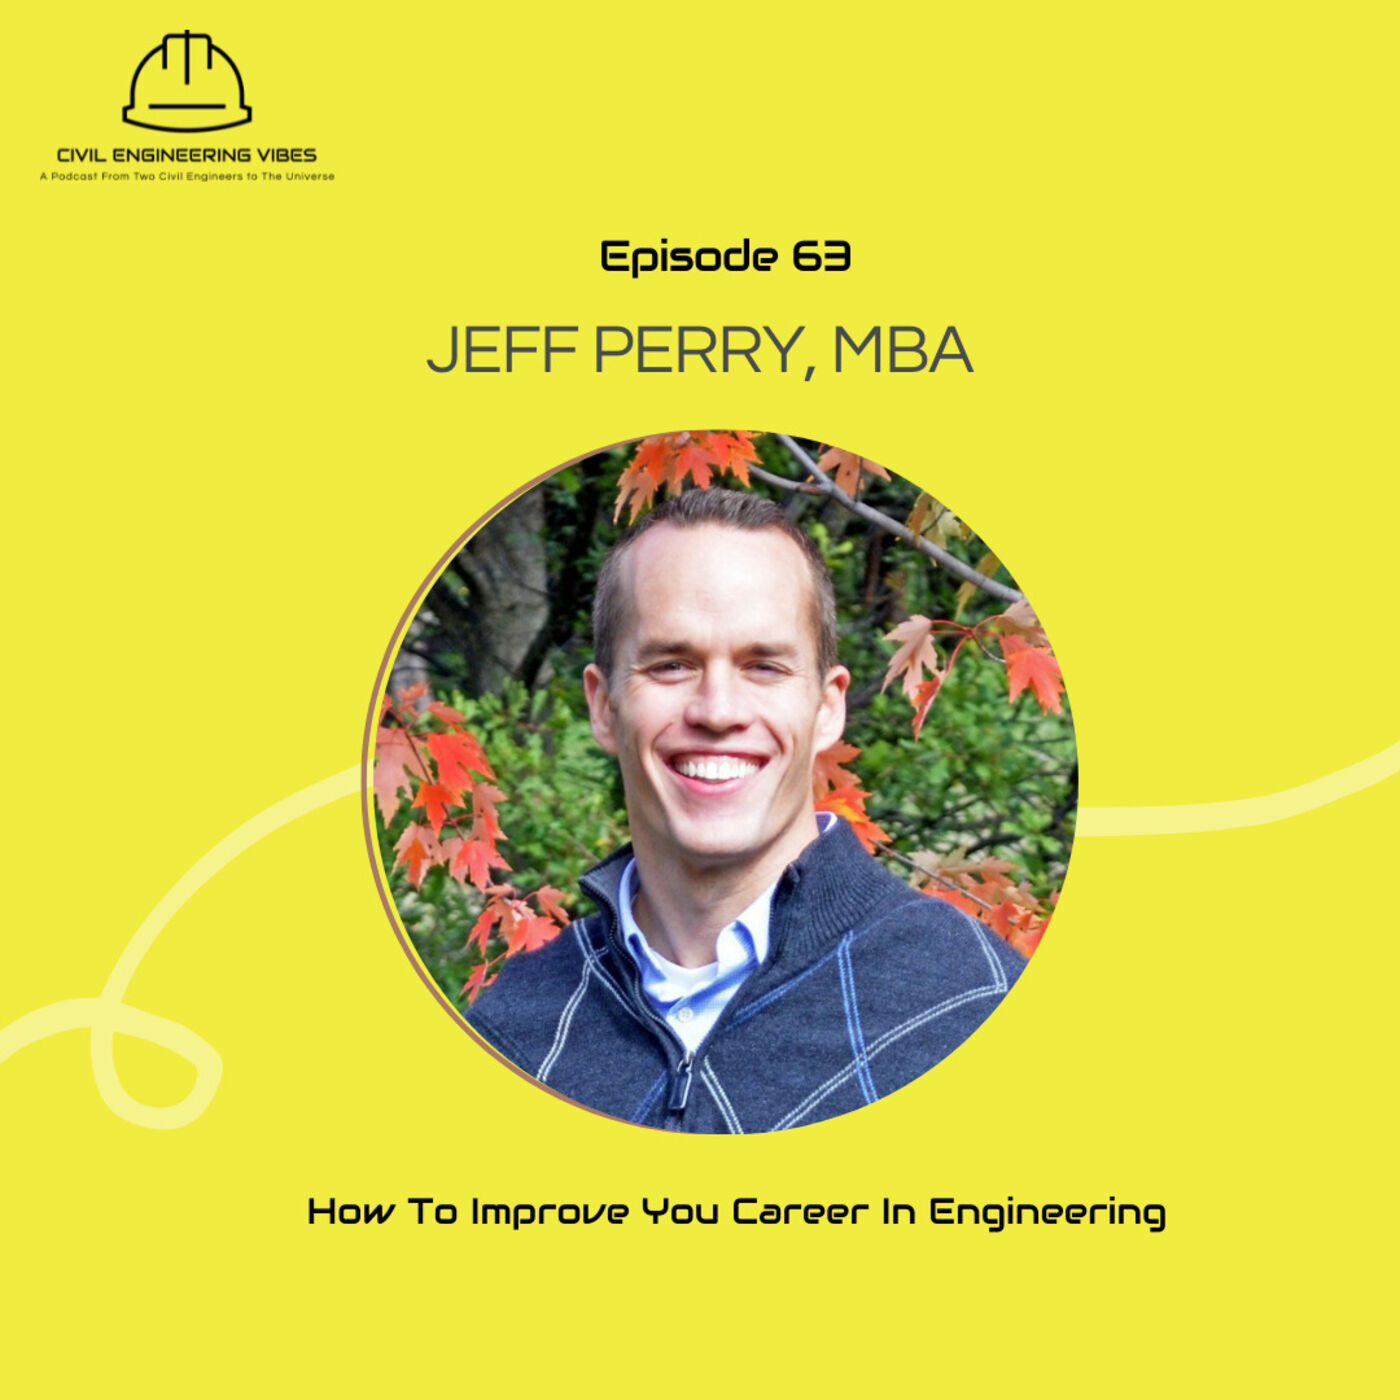 How To Improve You Career In Engineering  With Jeff Perry, MBA